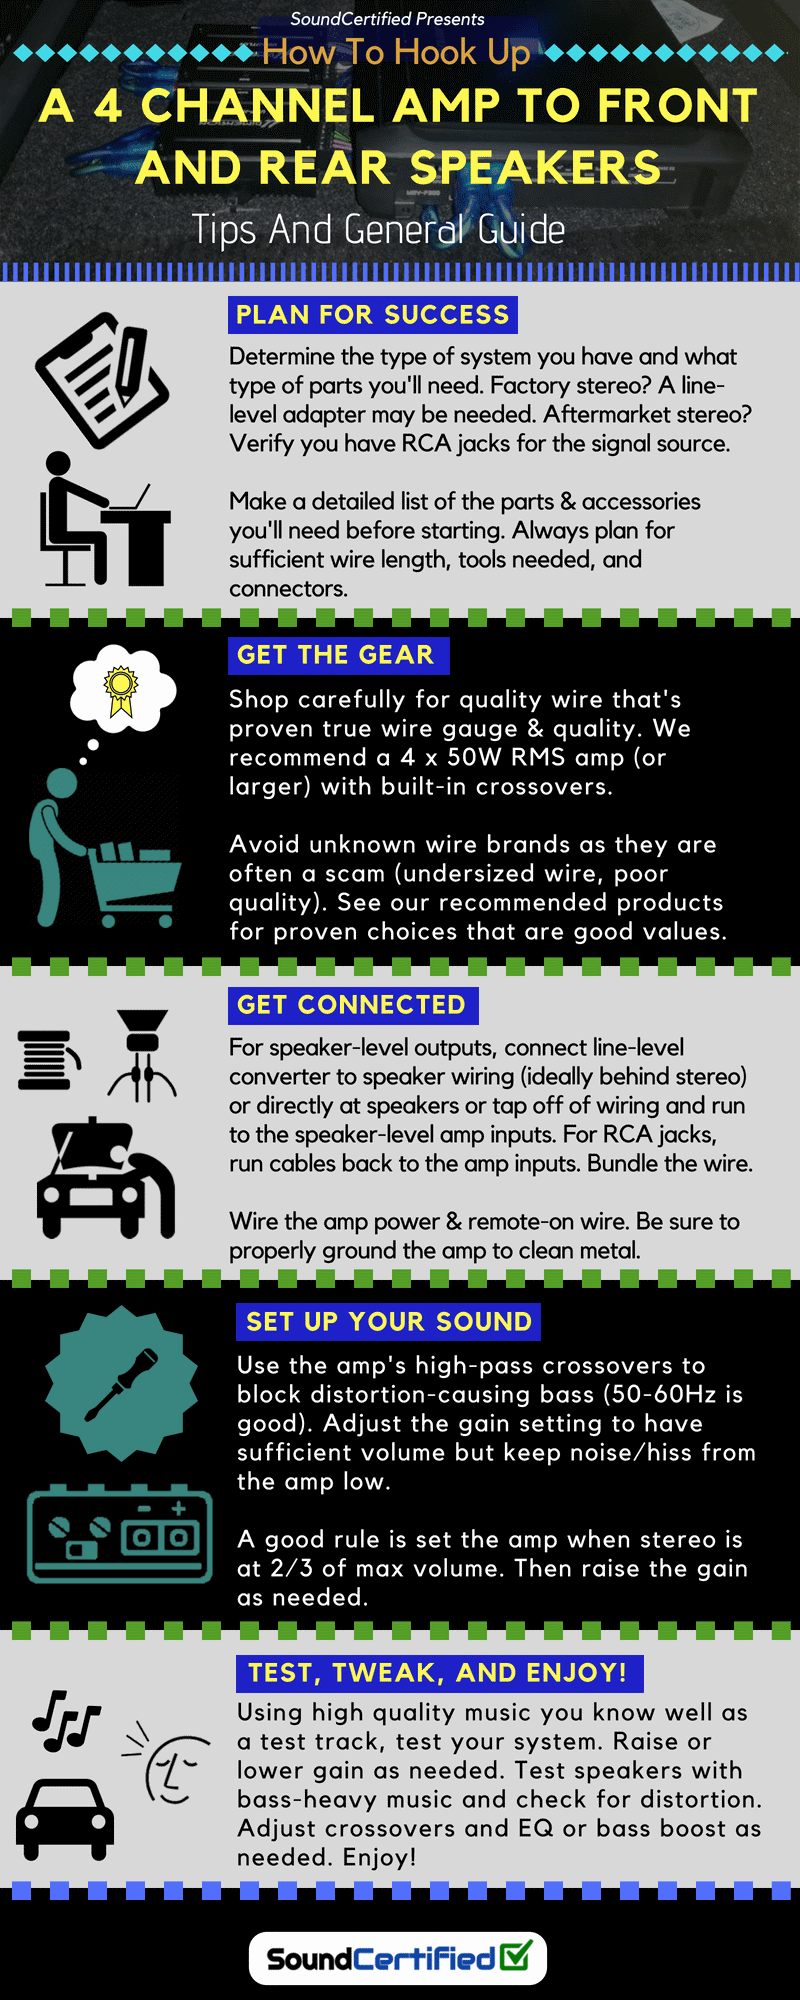 How to hook up a 4 channel amp to front and rear speakers hook up amp 4 channel amp front rear speakers infographic diagram greentooth